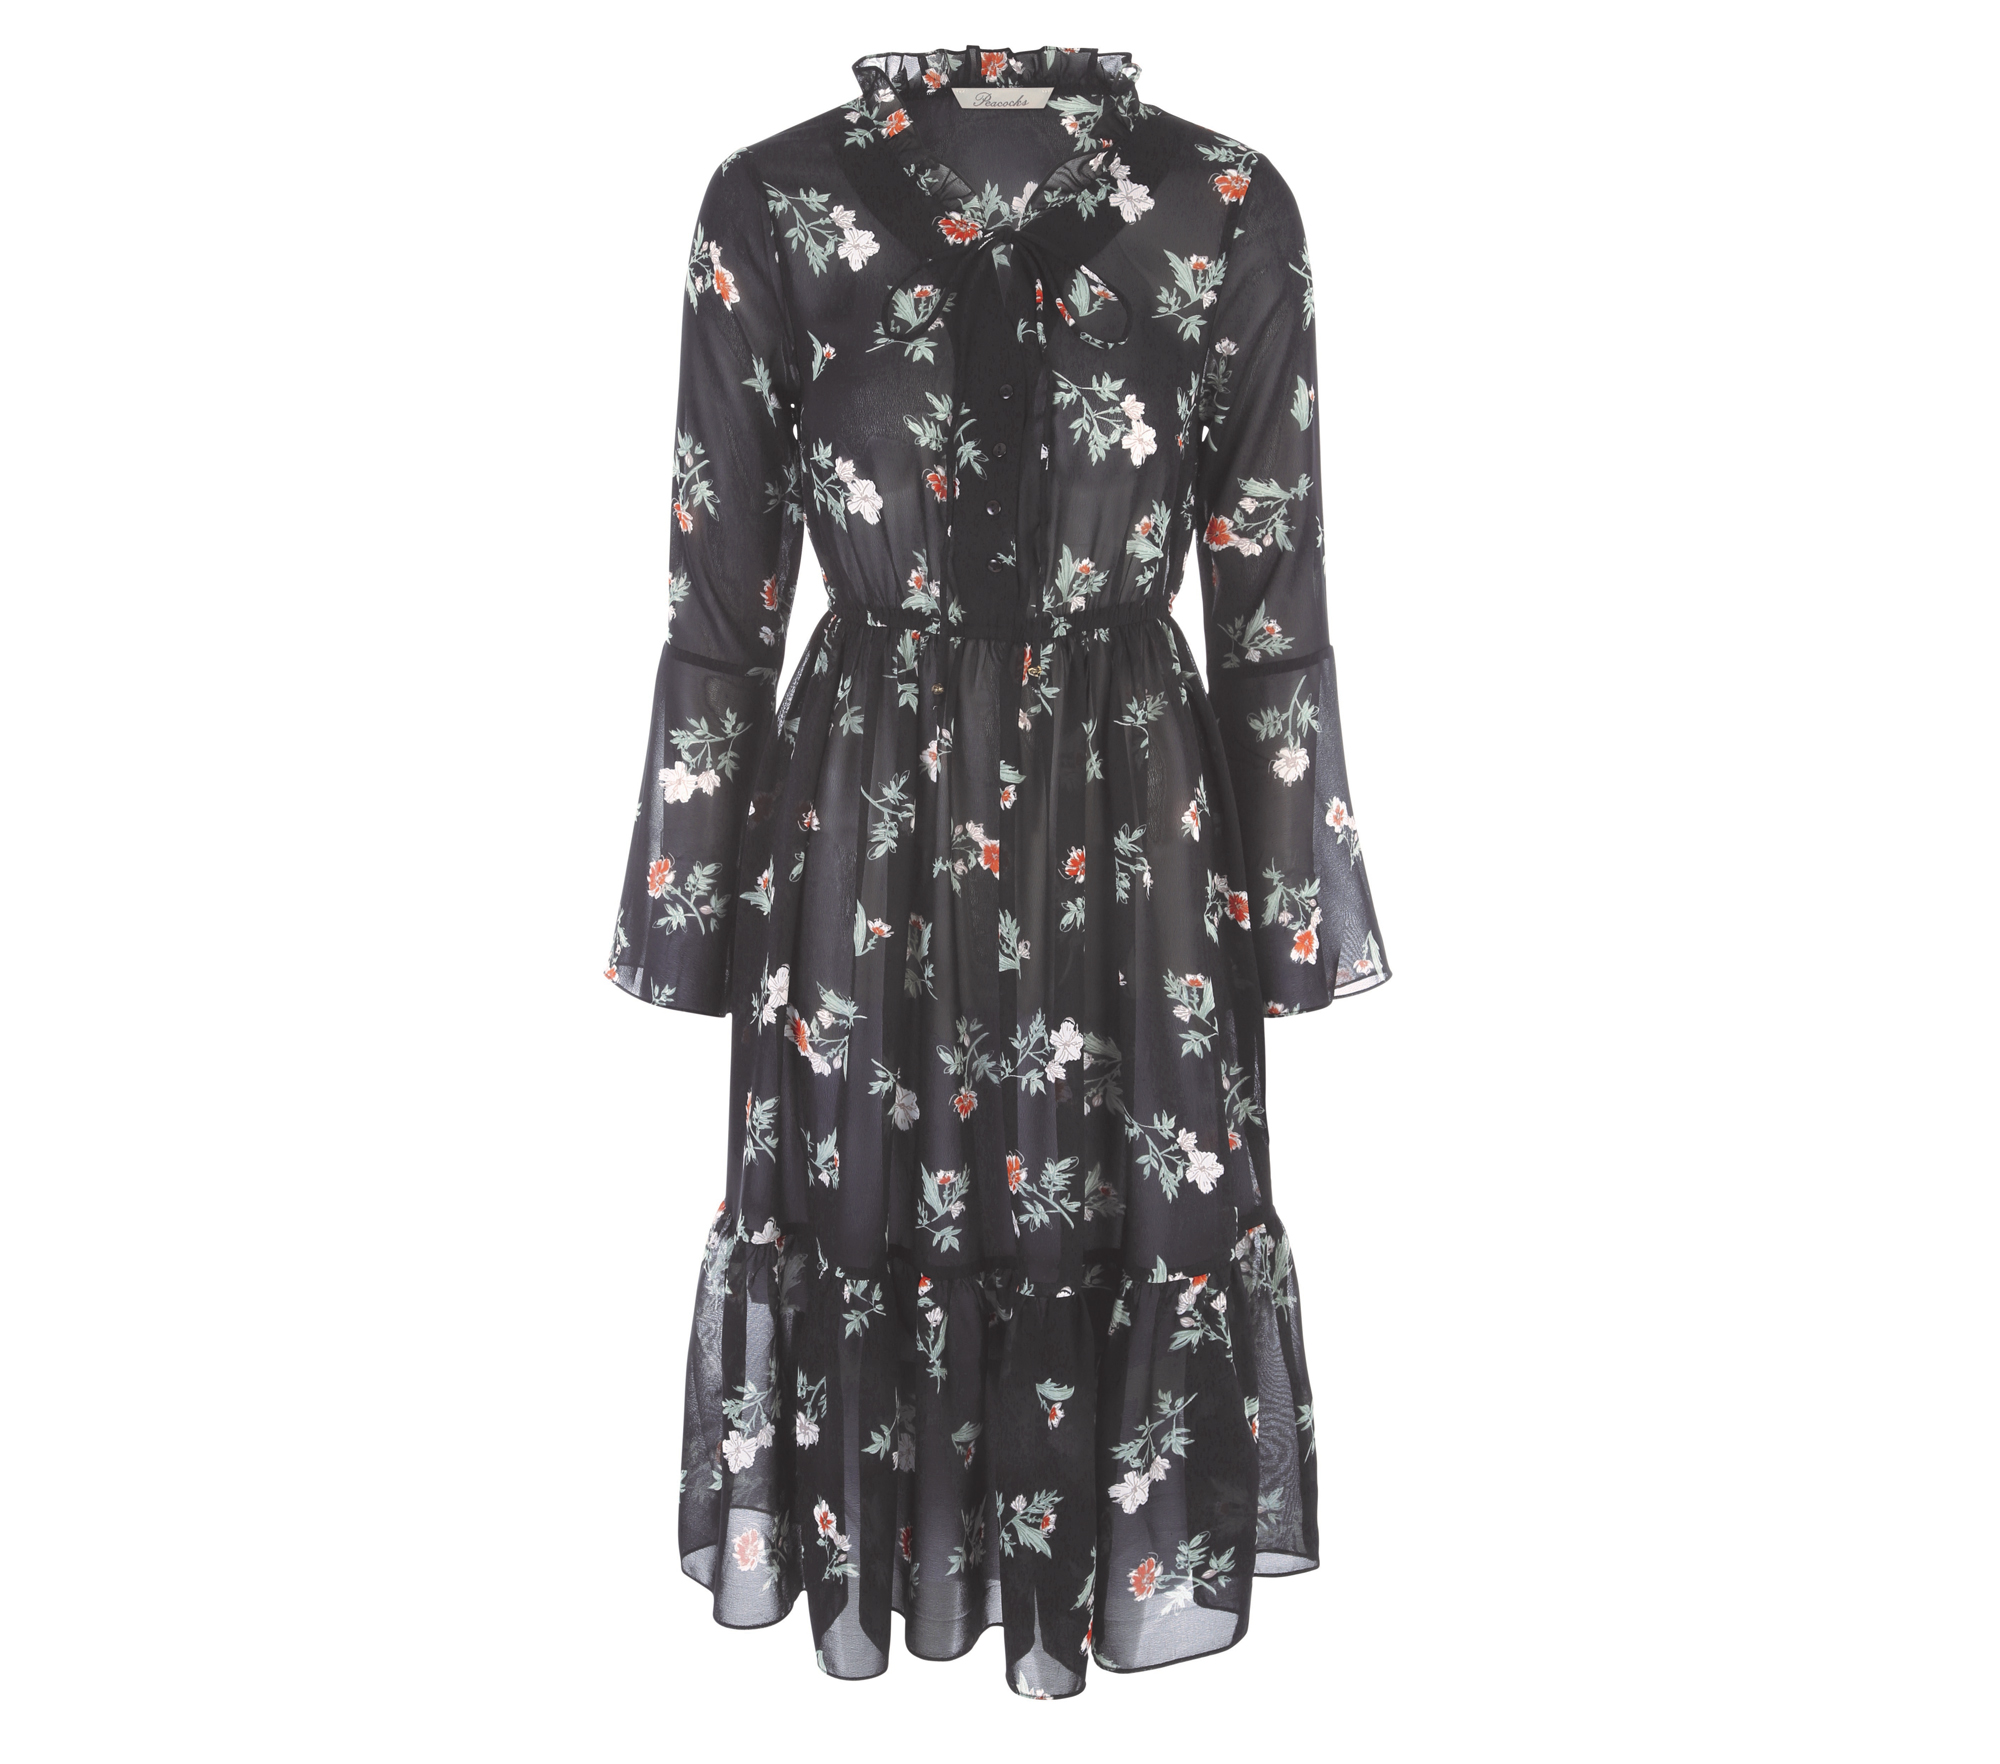 Peacocks Women's Black Floral Dress